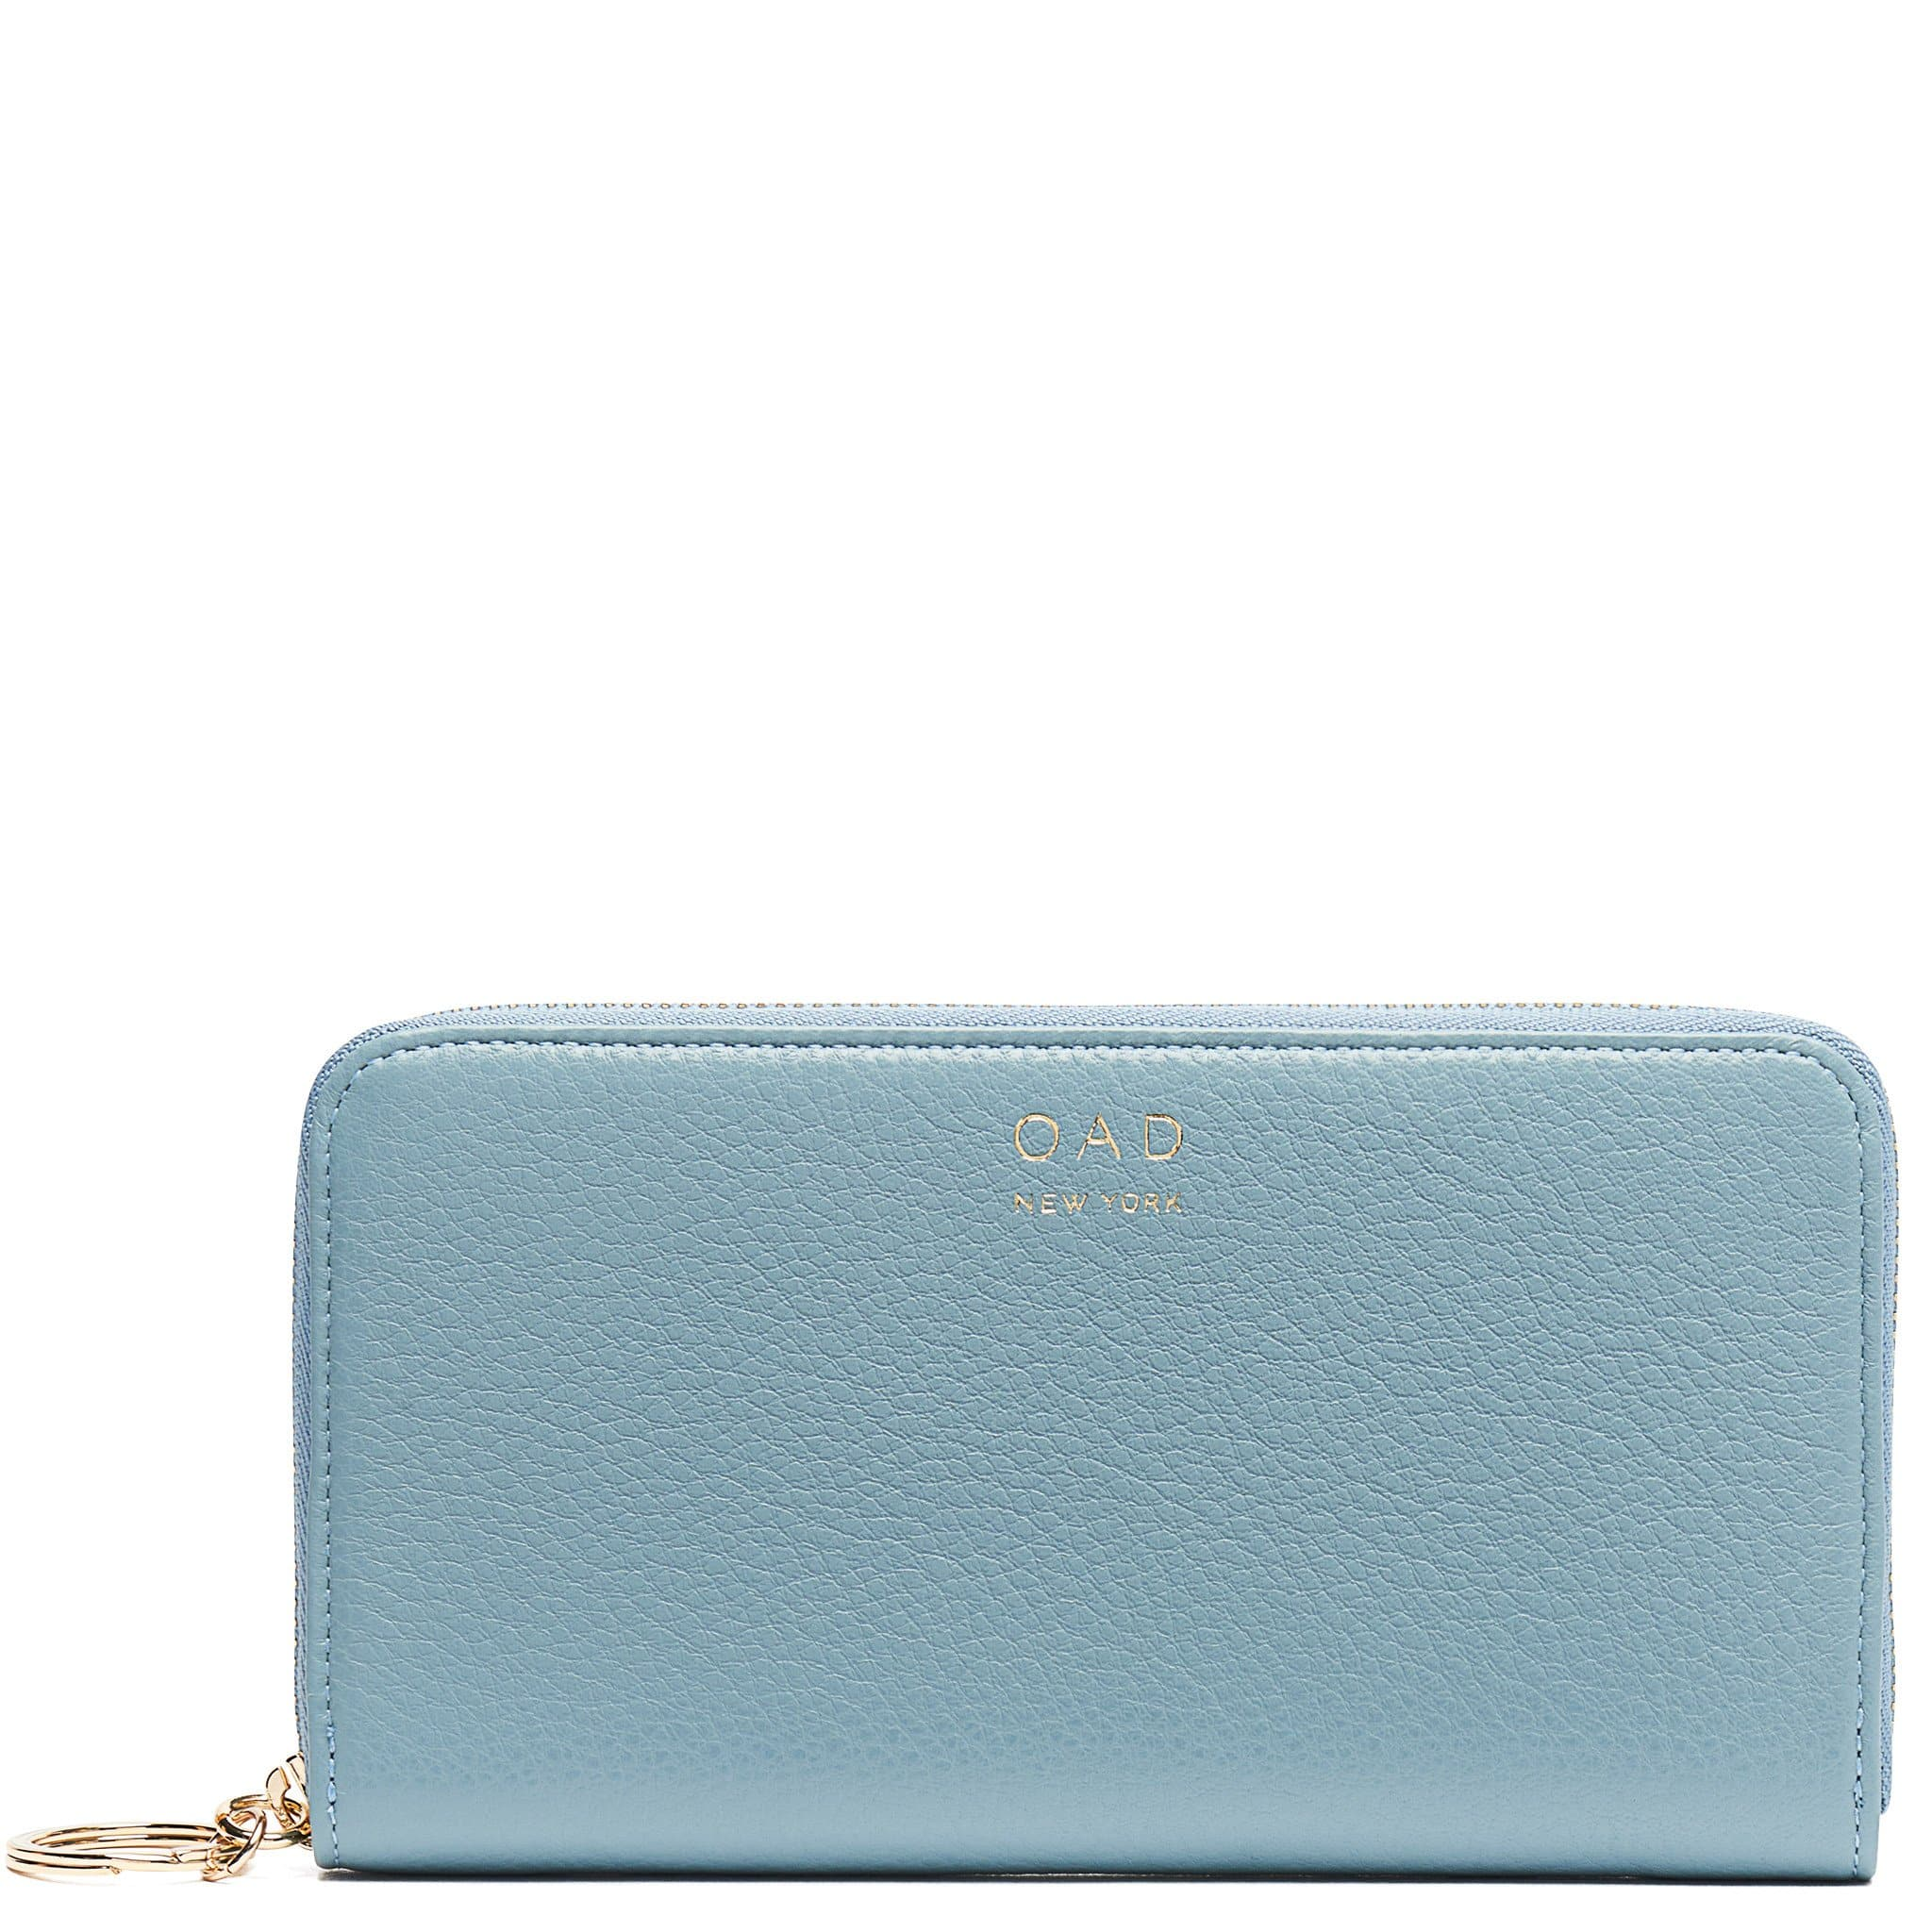 Full Zip Around Wallet - Powder Blue - OAD NEW YORK - 1